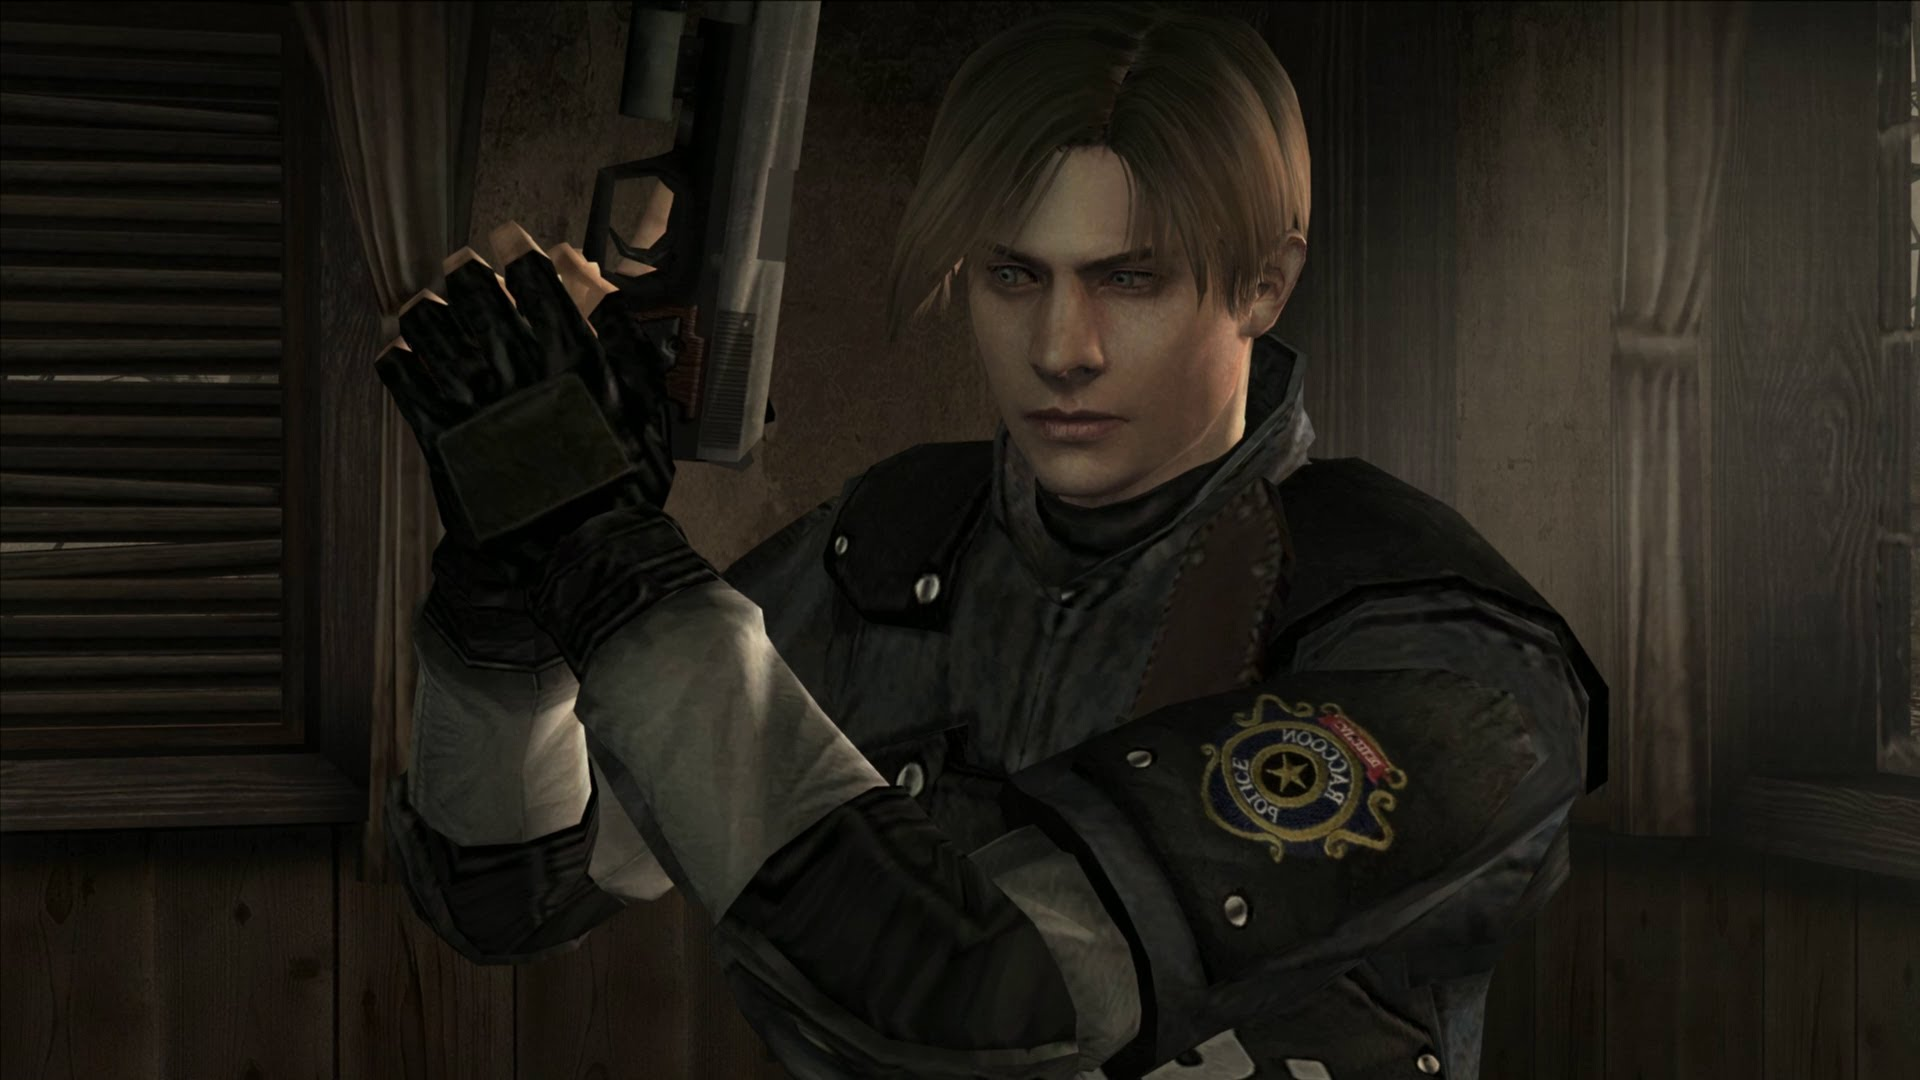 Wesker Wallpaper Hd Resident Evil 0 1 And 4 Launching Later This May On